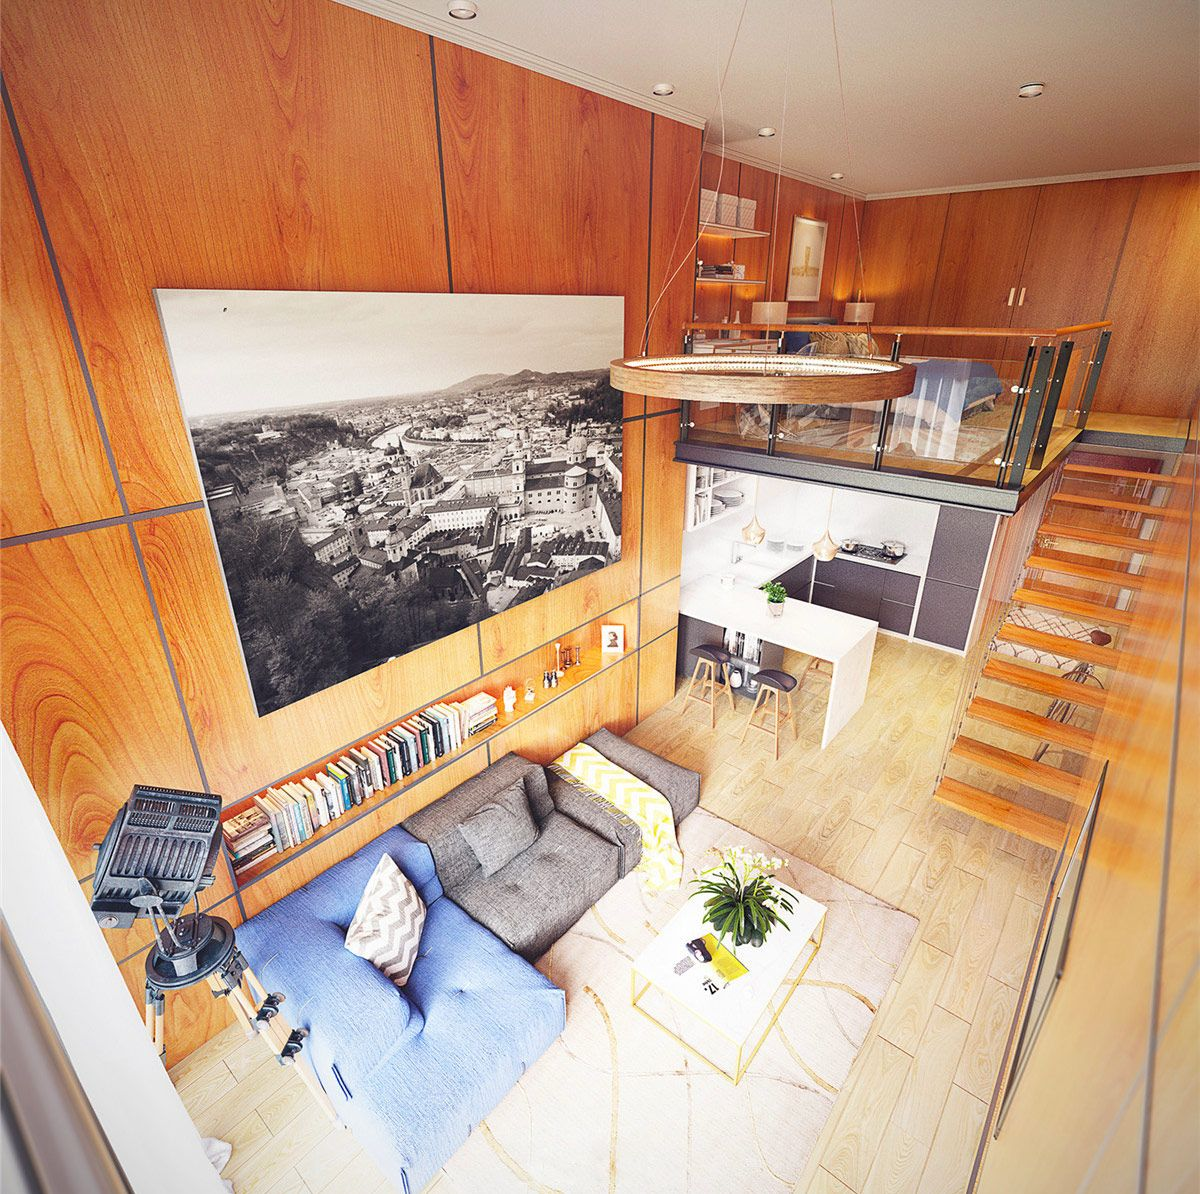 Small Homes That Use Lofts To Gain More Floor Space Loft